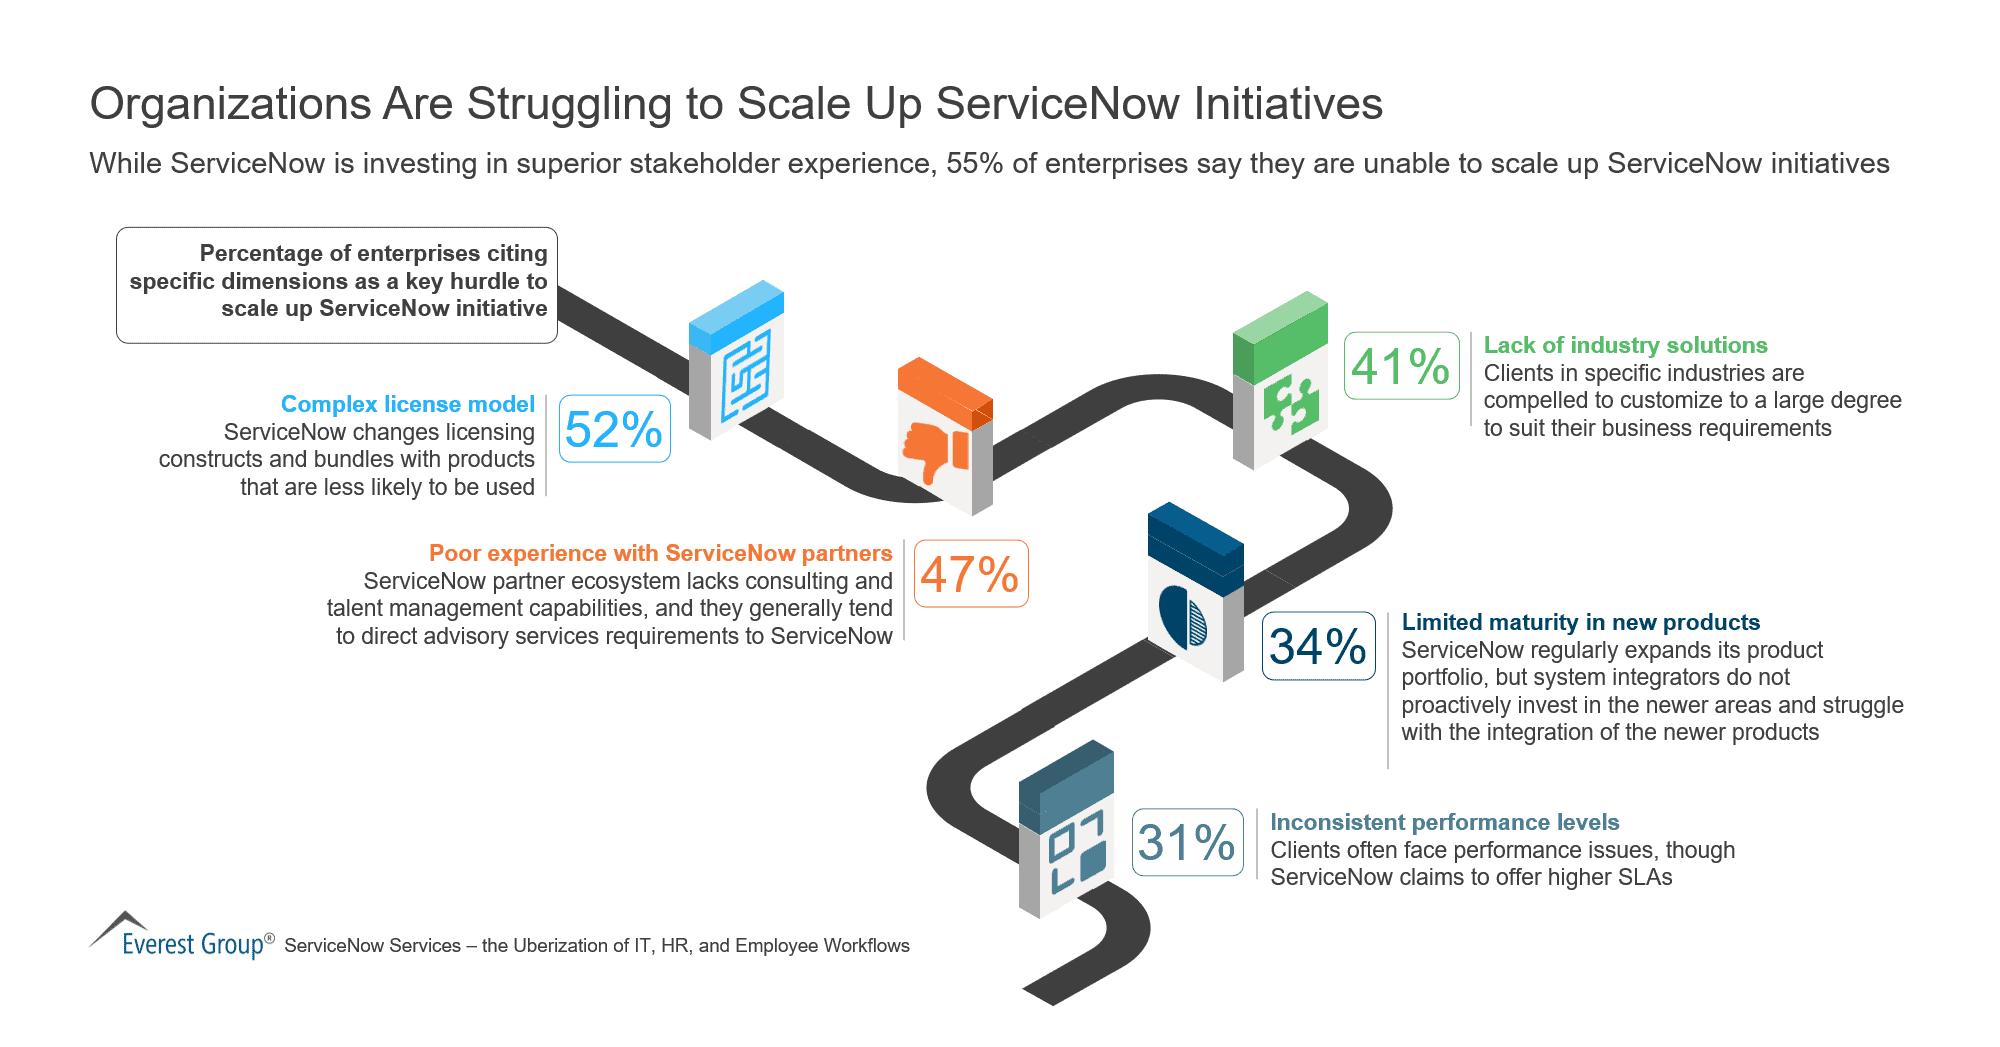 Organizations Are Struggling to Scale Up ServiceNow Initiatives